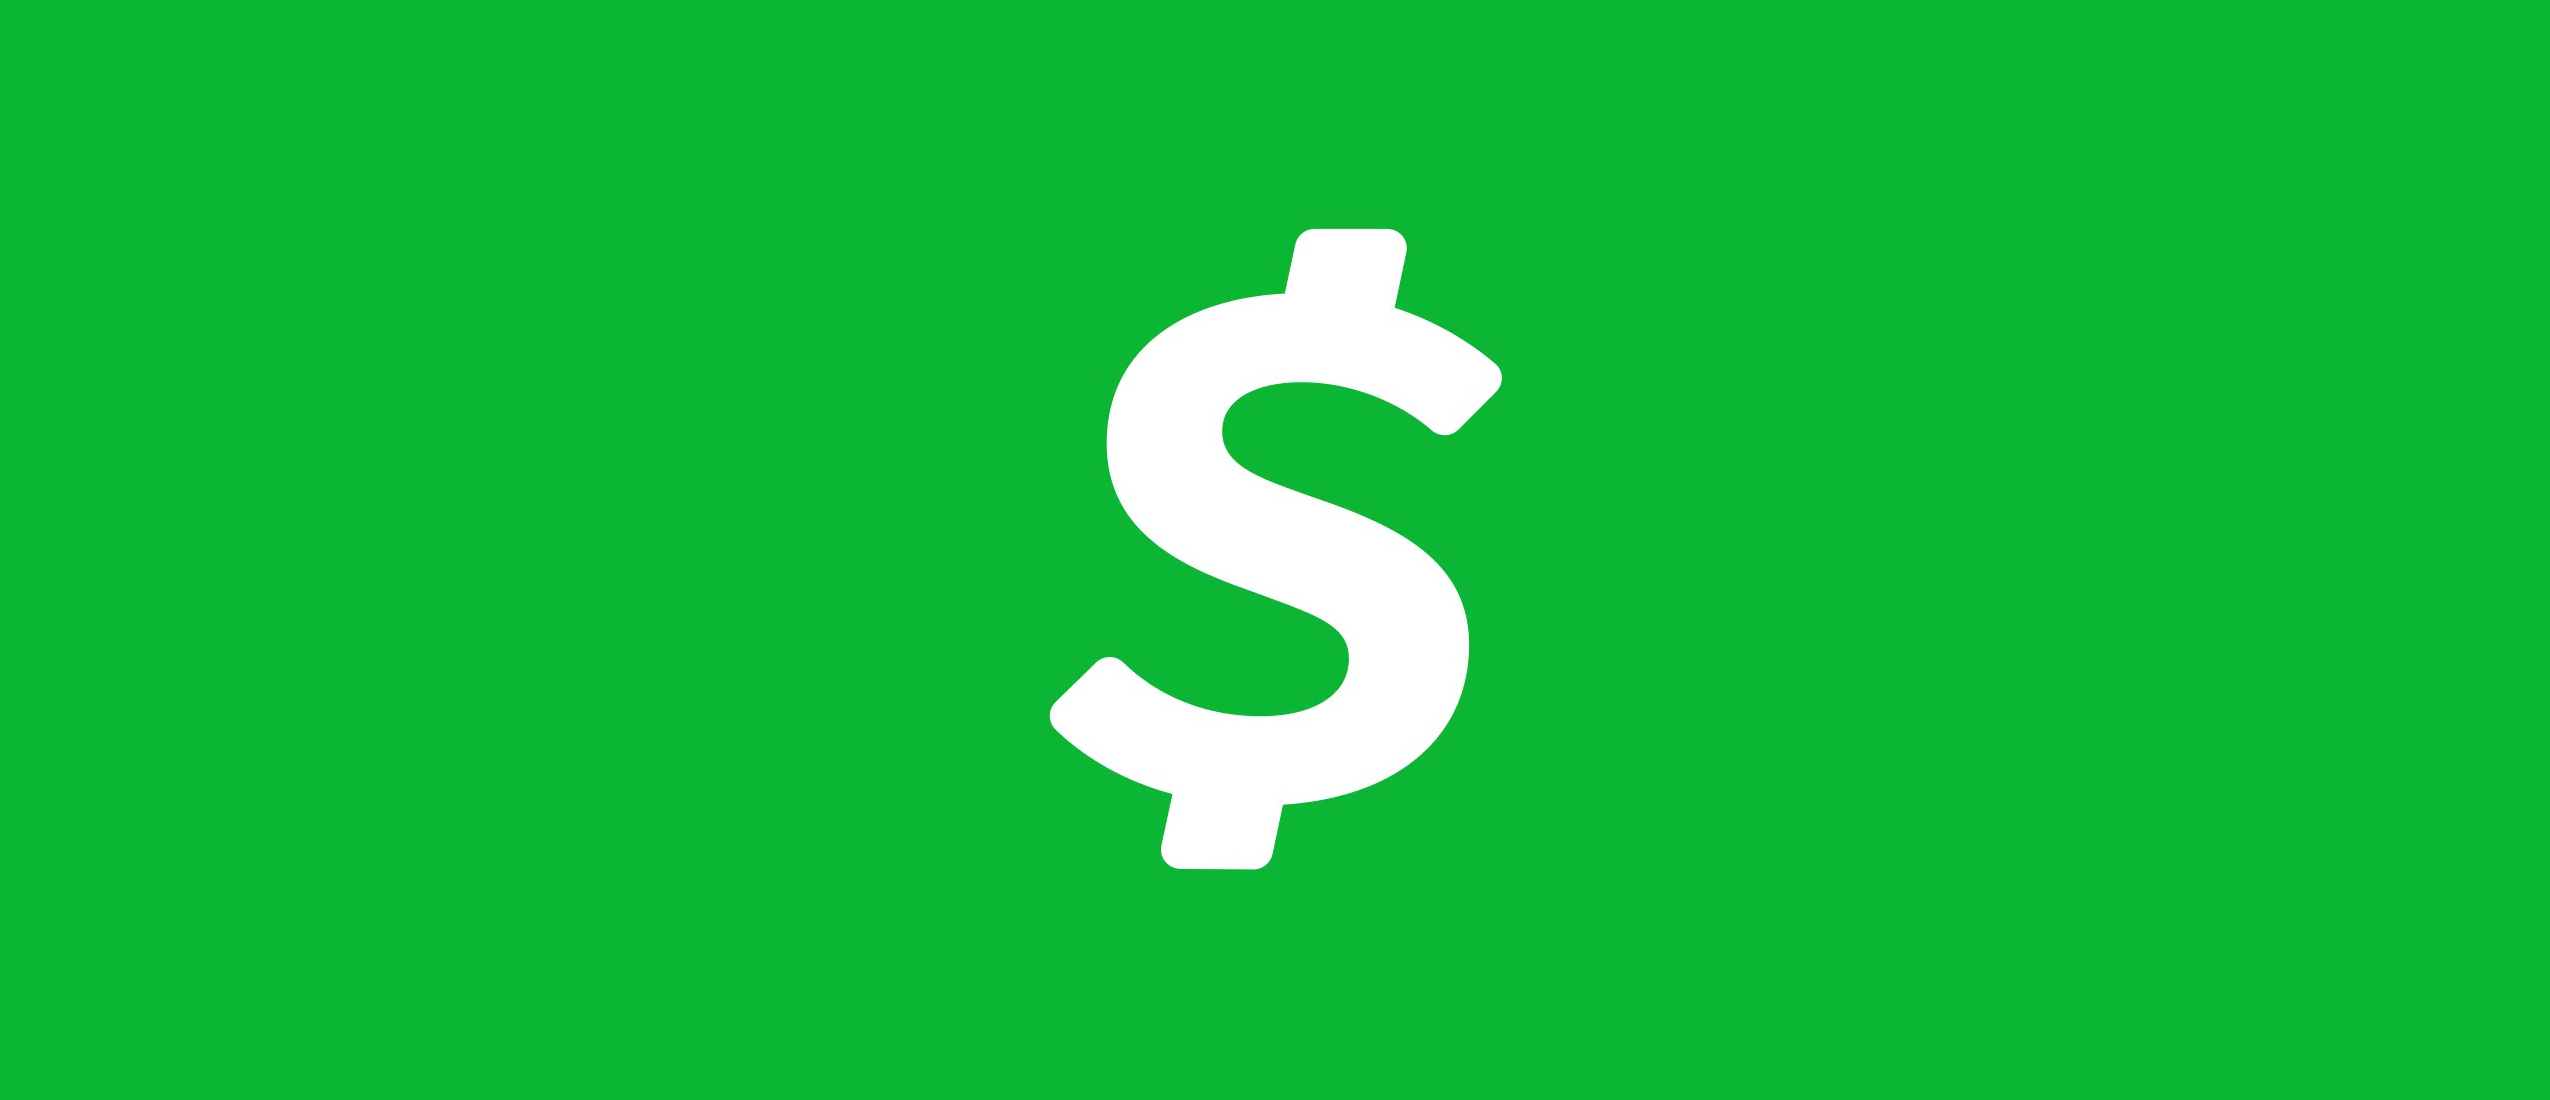 Cash application logo